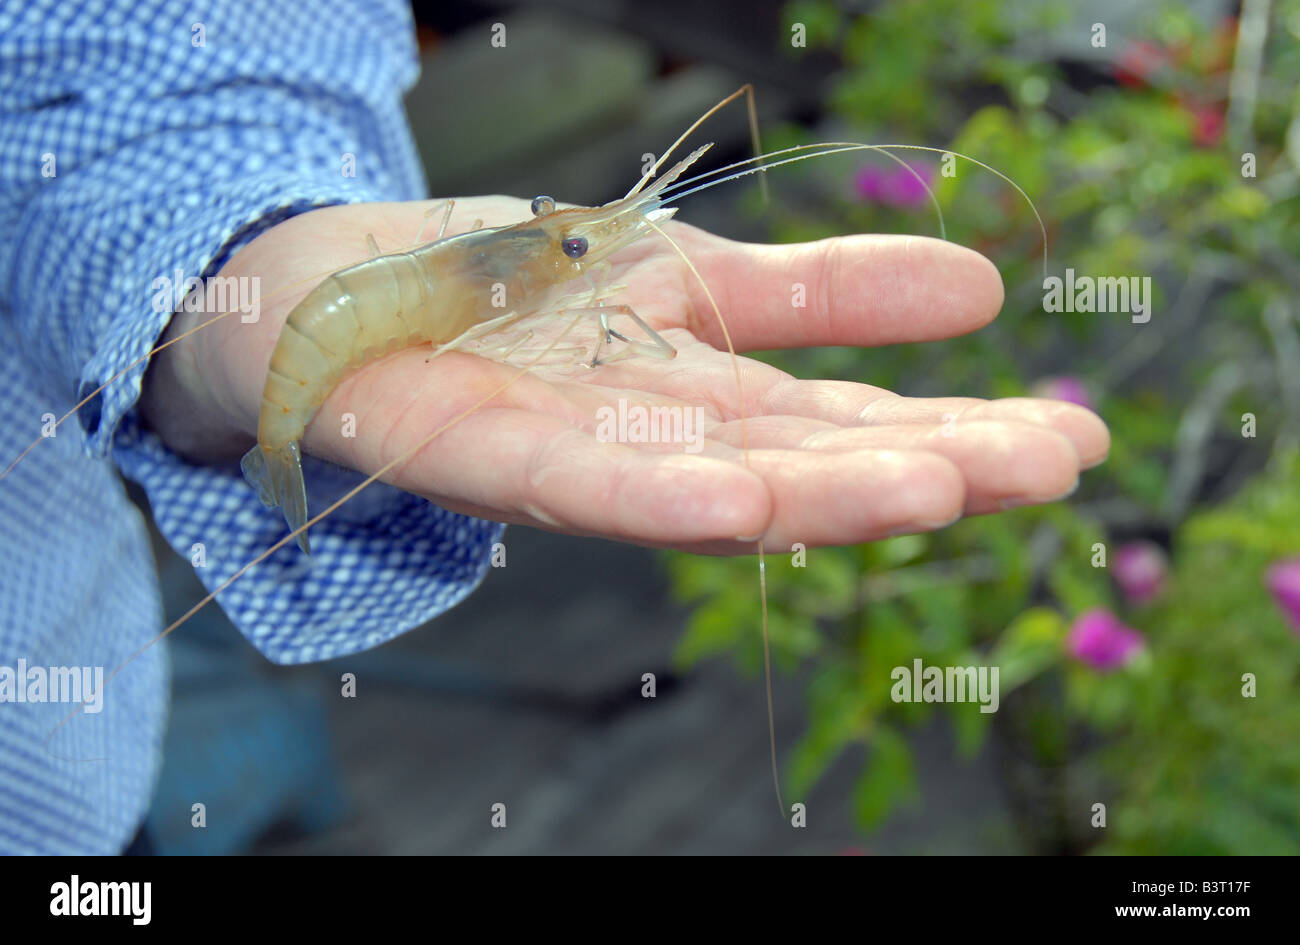 Malaysian Freshwater Transparent Shrimp Alive On Hand To Illustrate Stock Photo Alamy